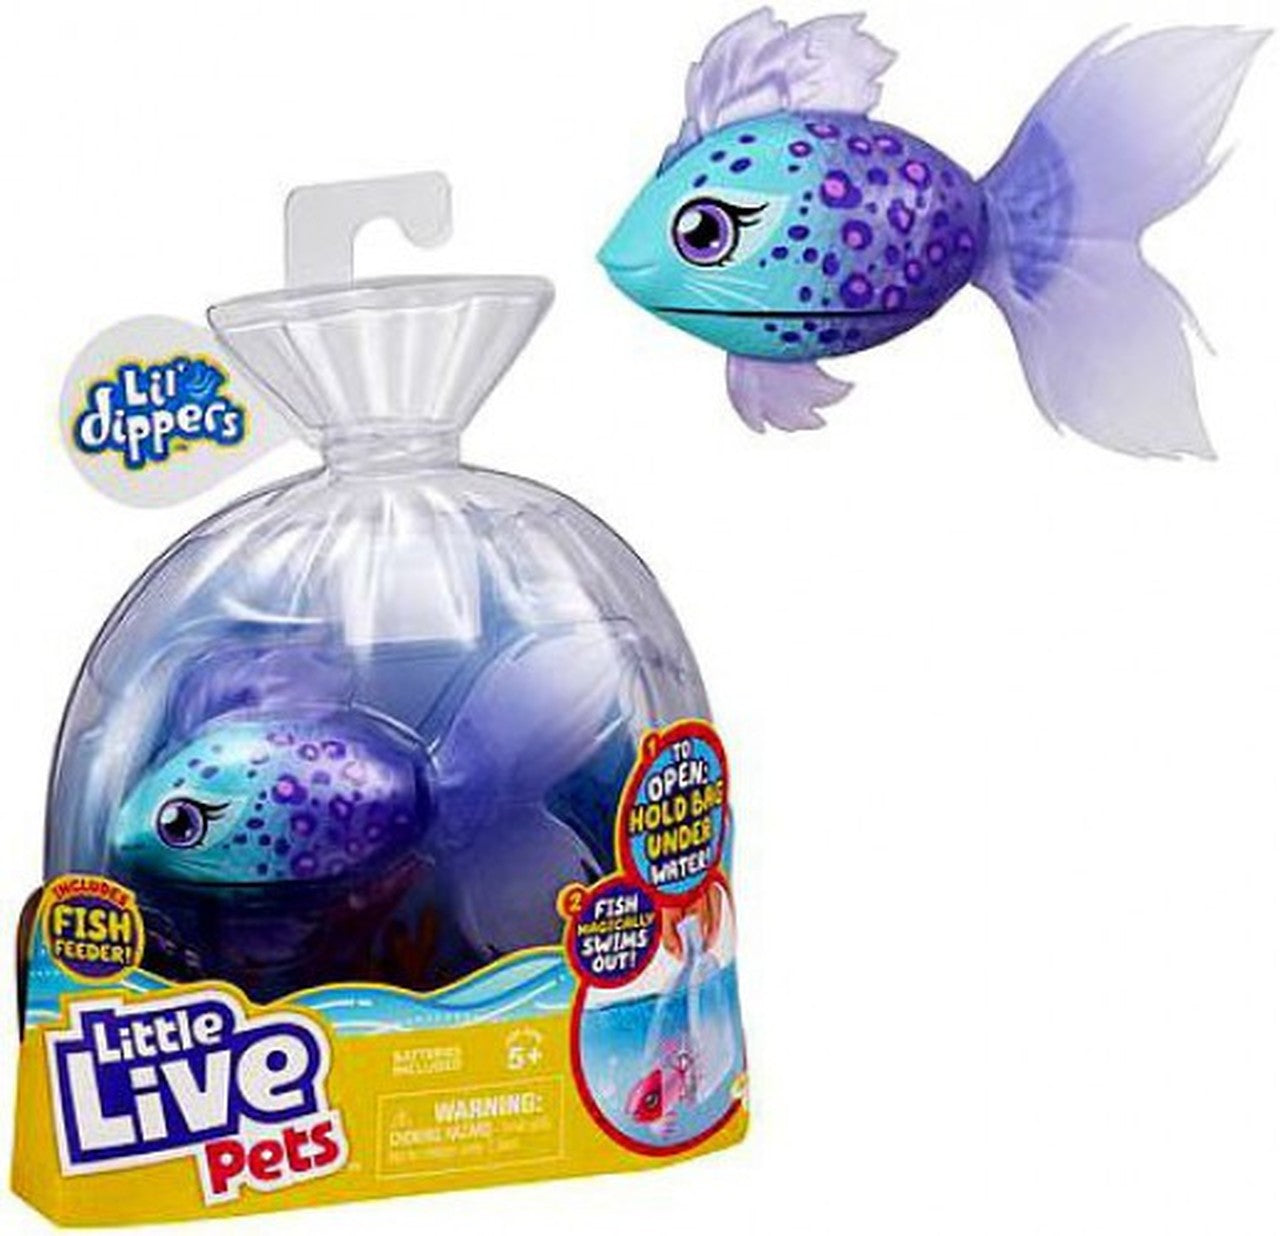 LITTLE LIVE PETS LIL DIPPERS SINGLE PACK